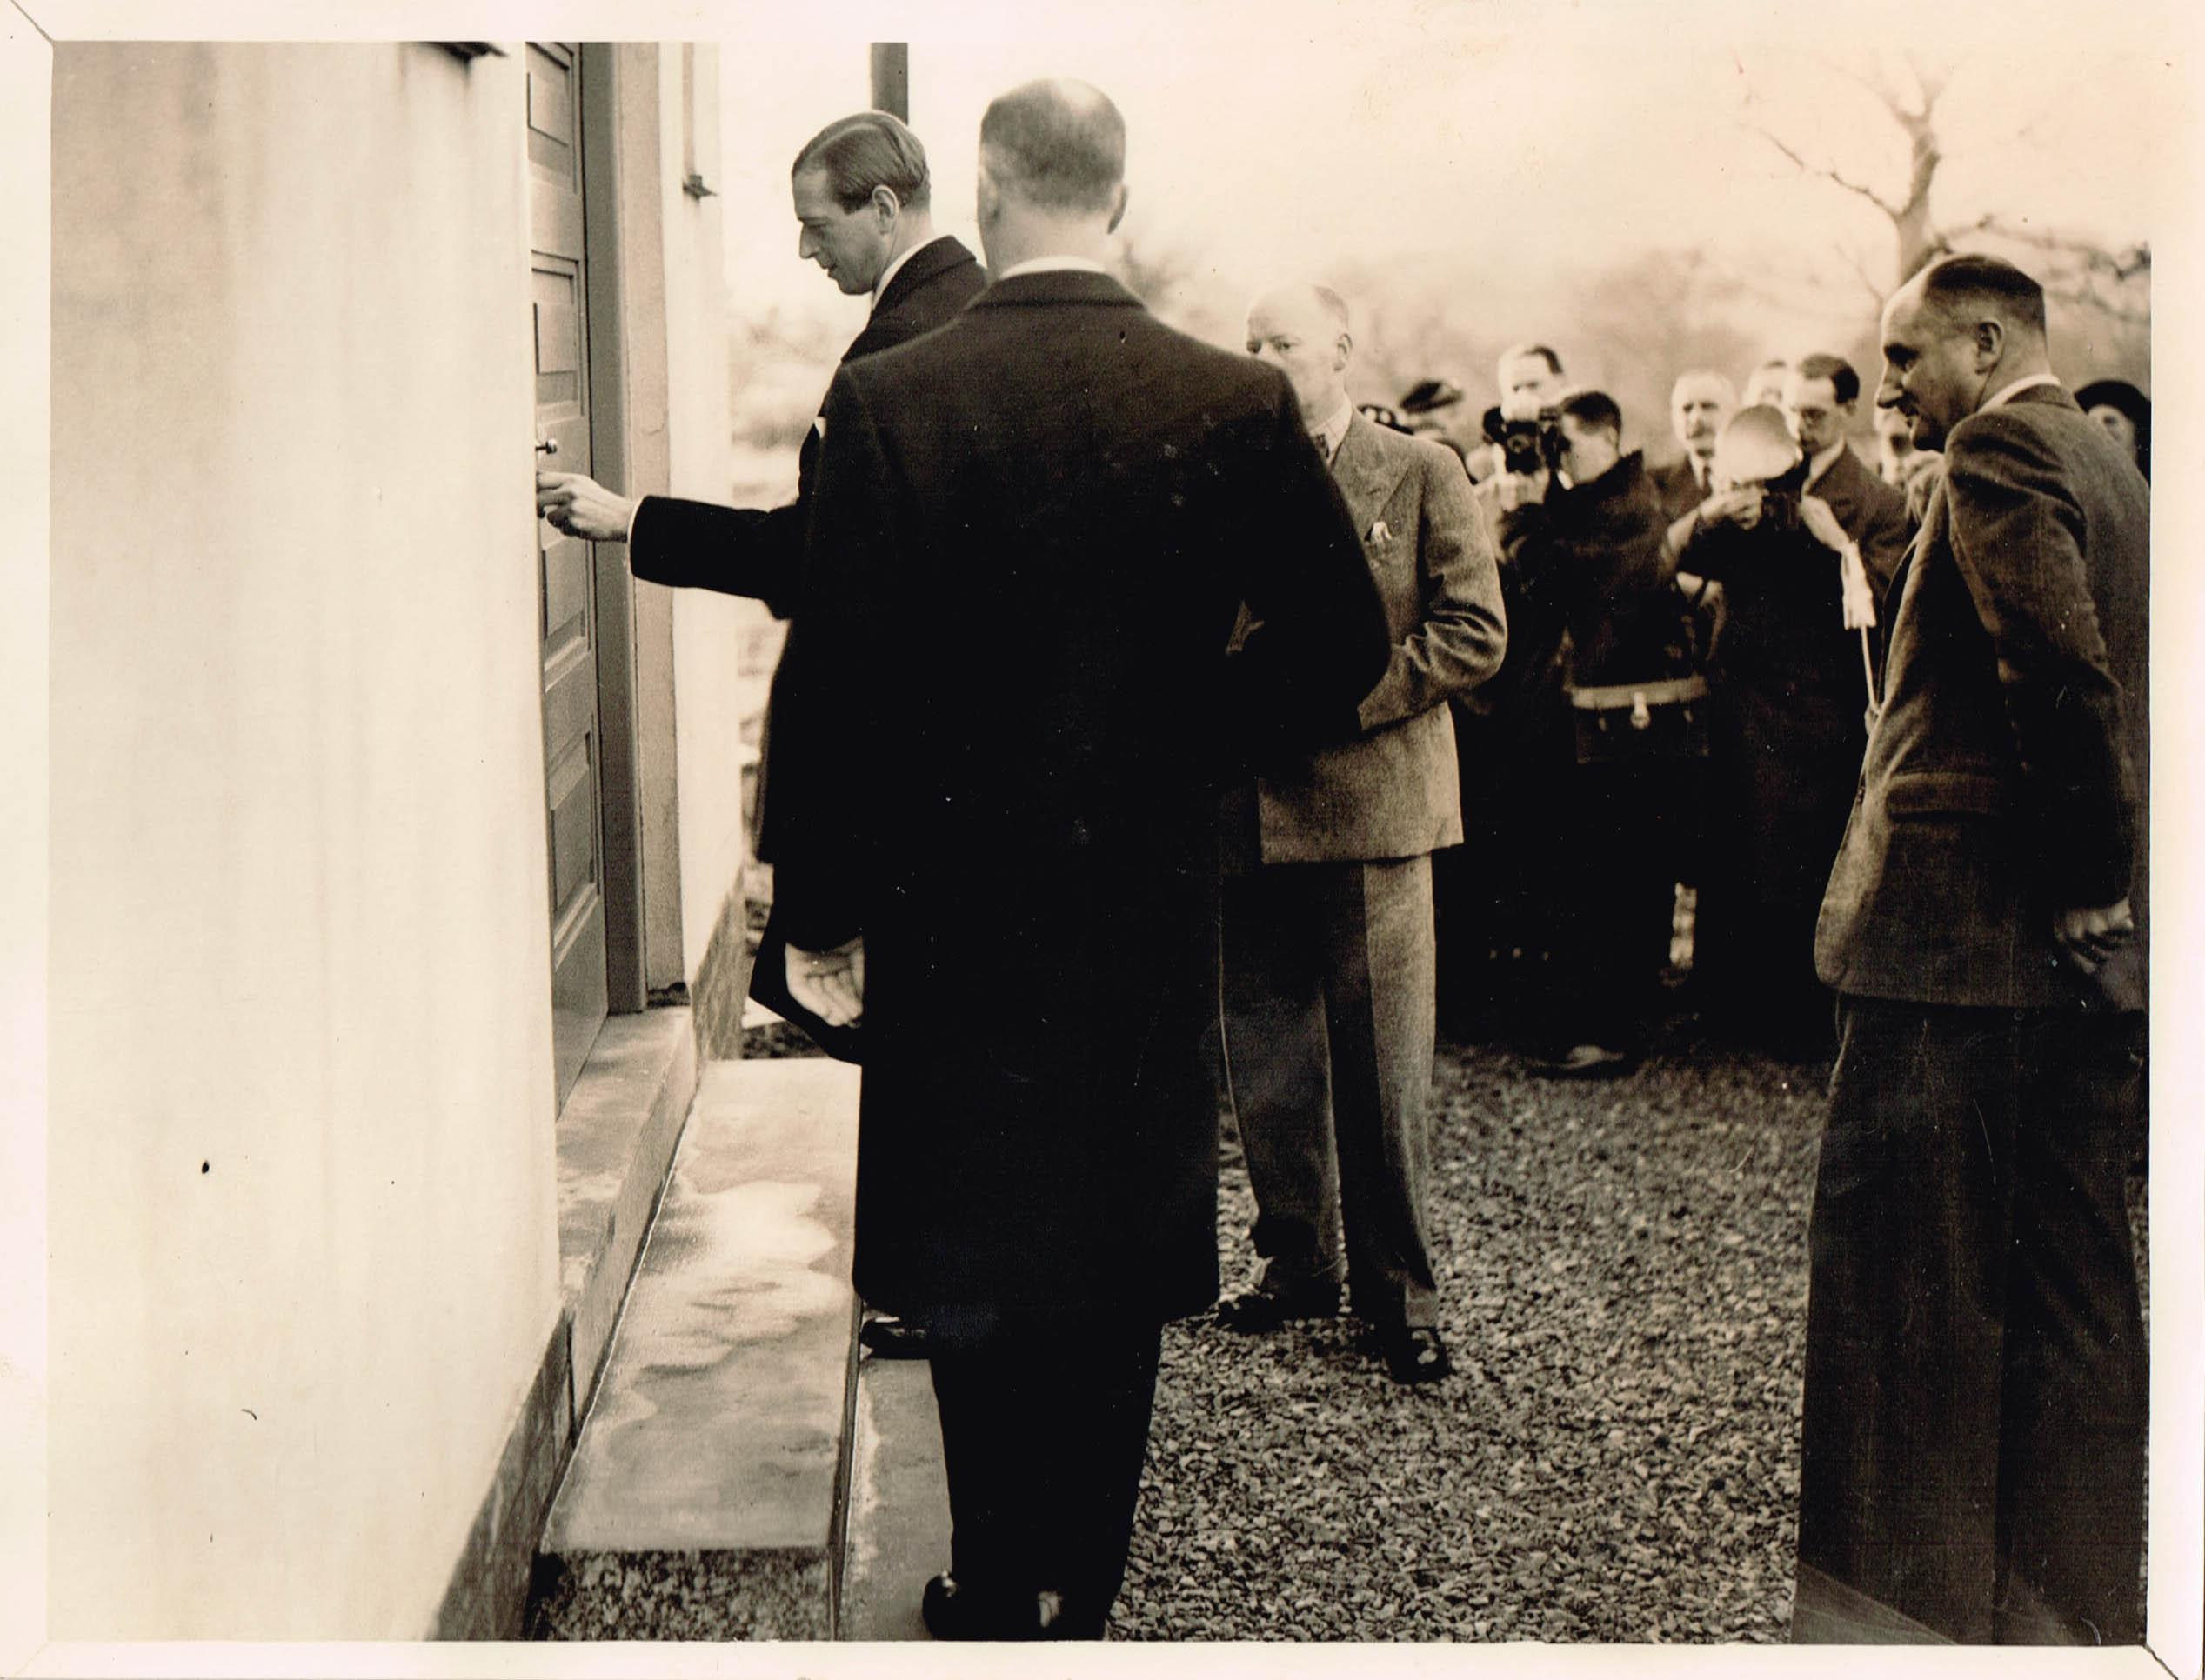 1.	His Royal Highness opening the door to the newly built Fillongley Village Hall on 14th December 1938